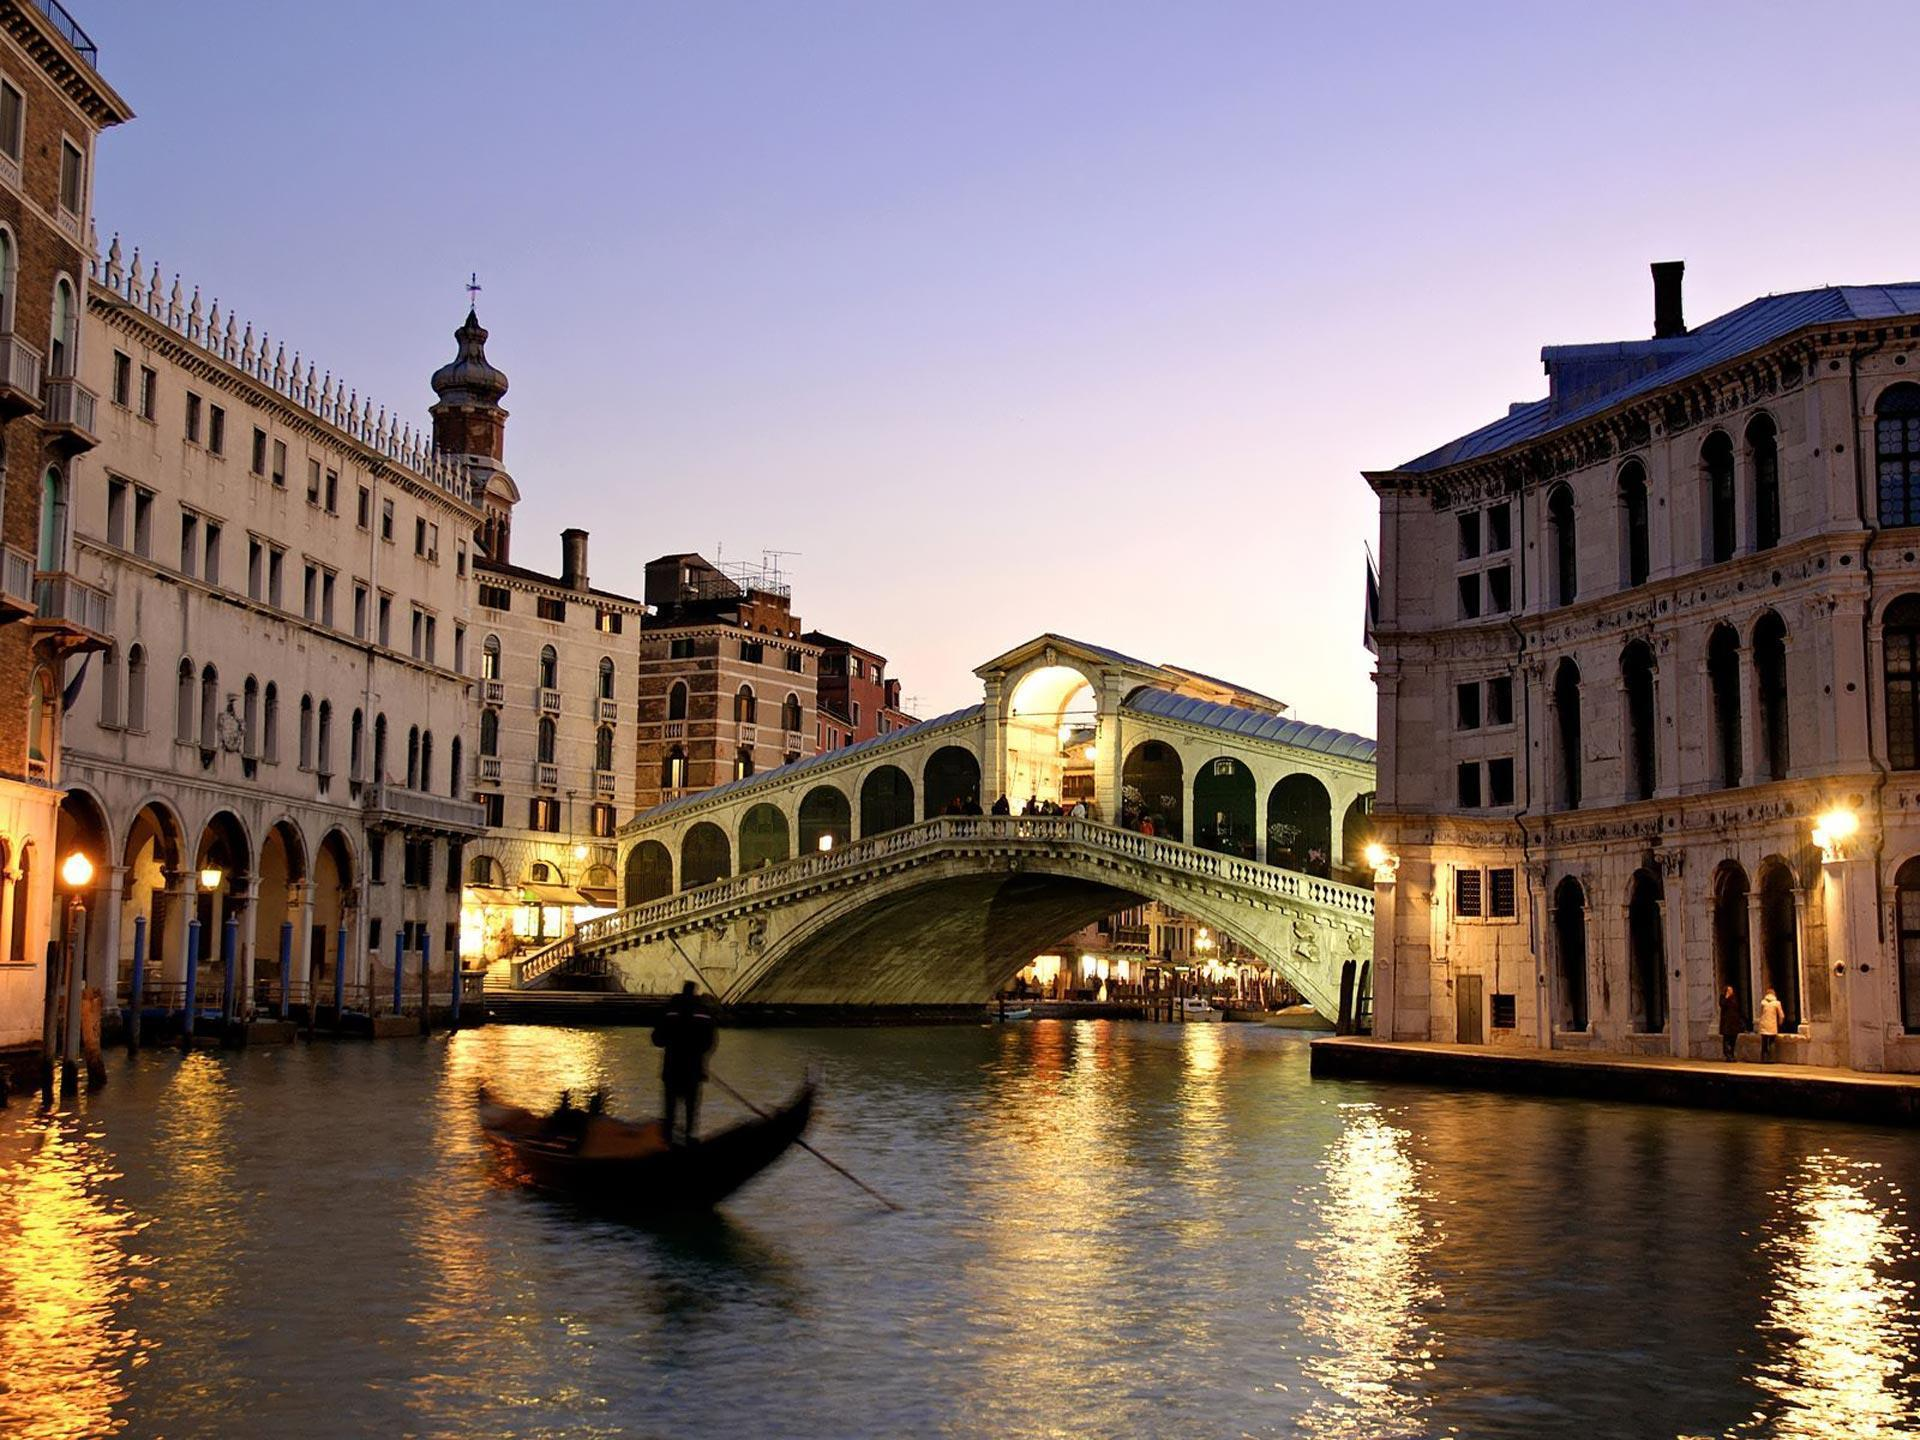 Desktop Wallpaper · Gallery · Travels · Rialto Bridge Grand Canal ...